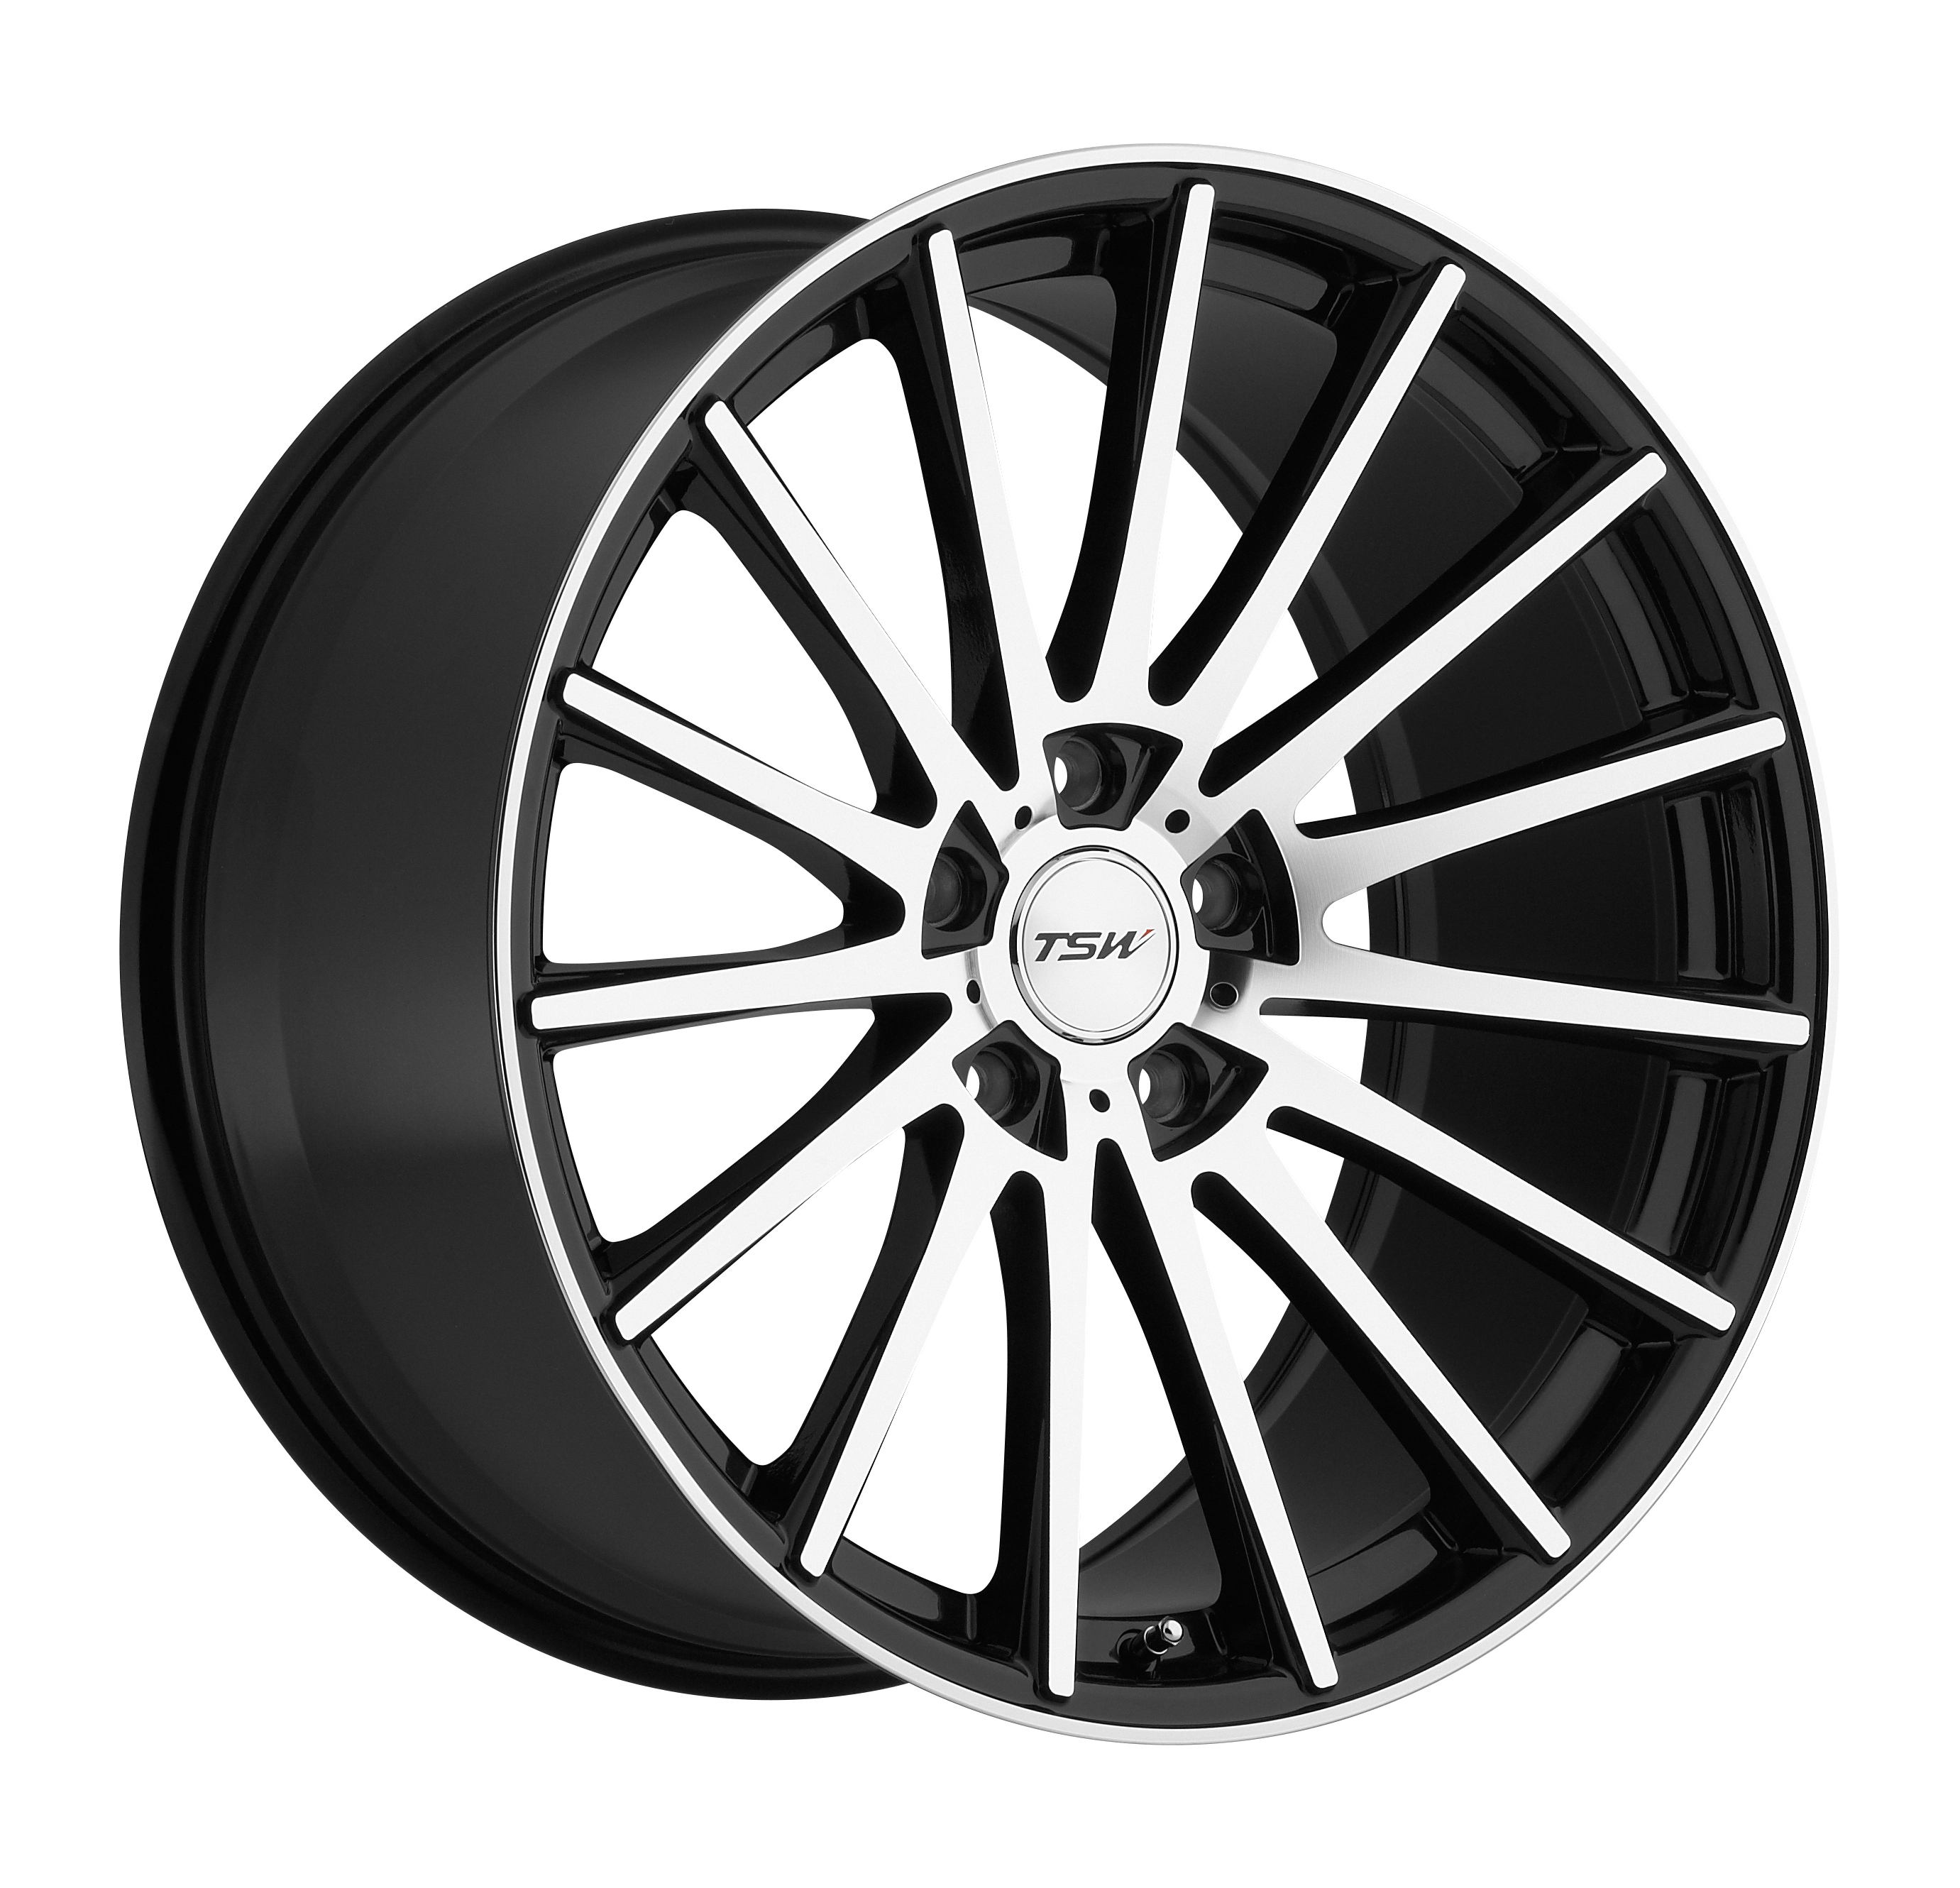 Tsw Alloy Wheels Introduces Seven New Models For 2015 In